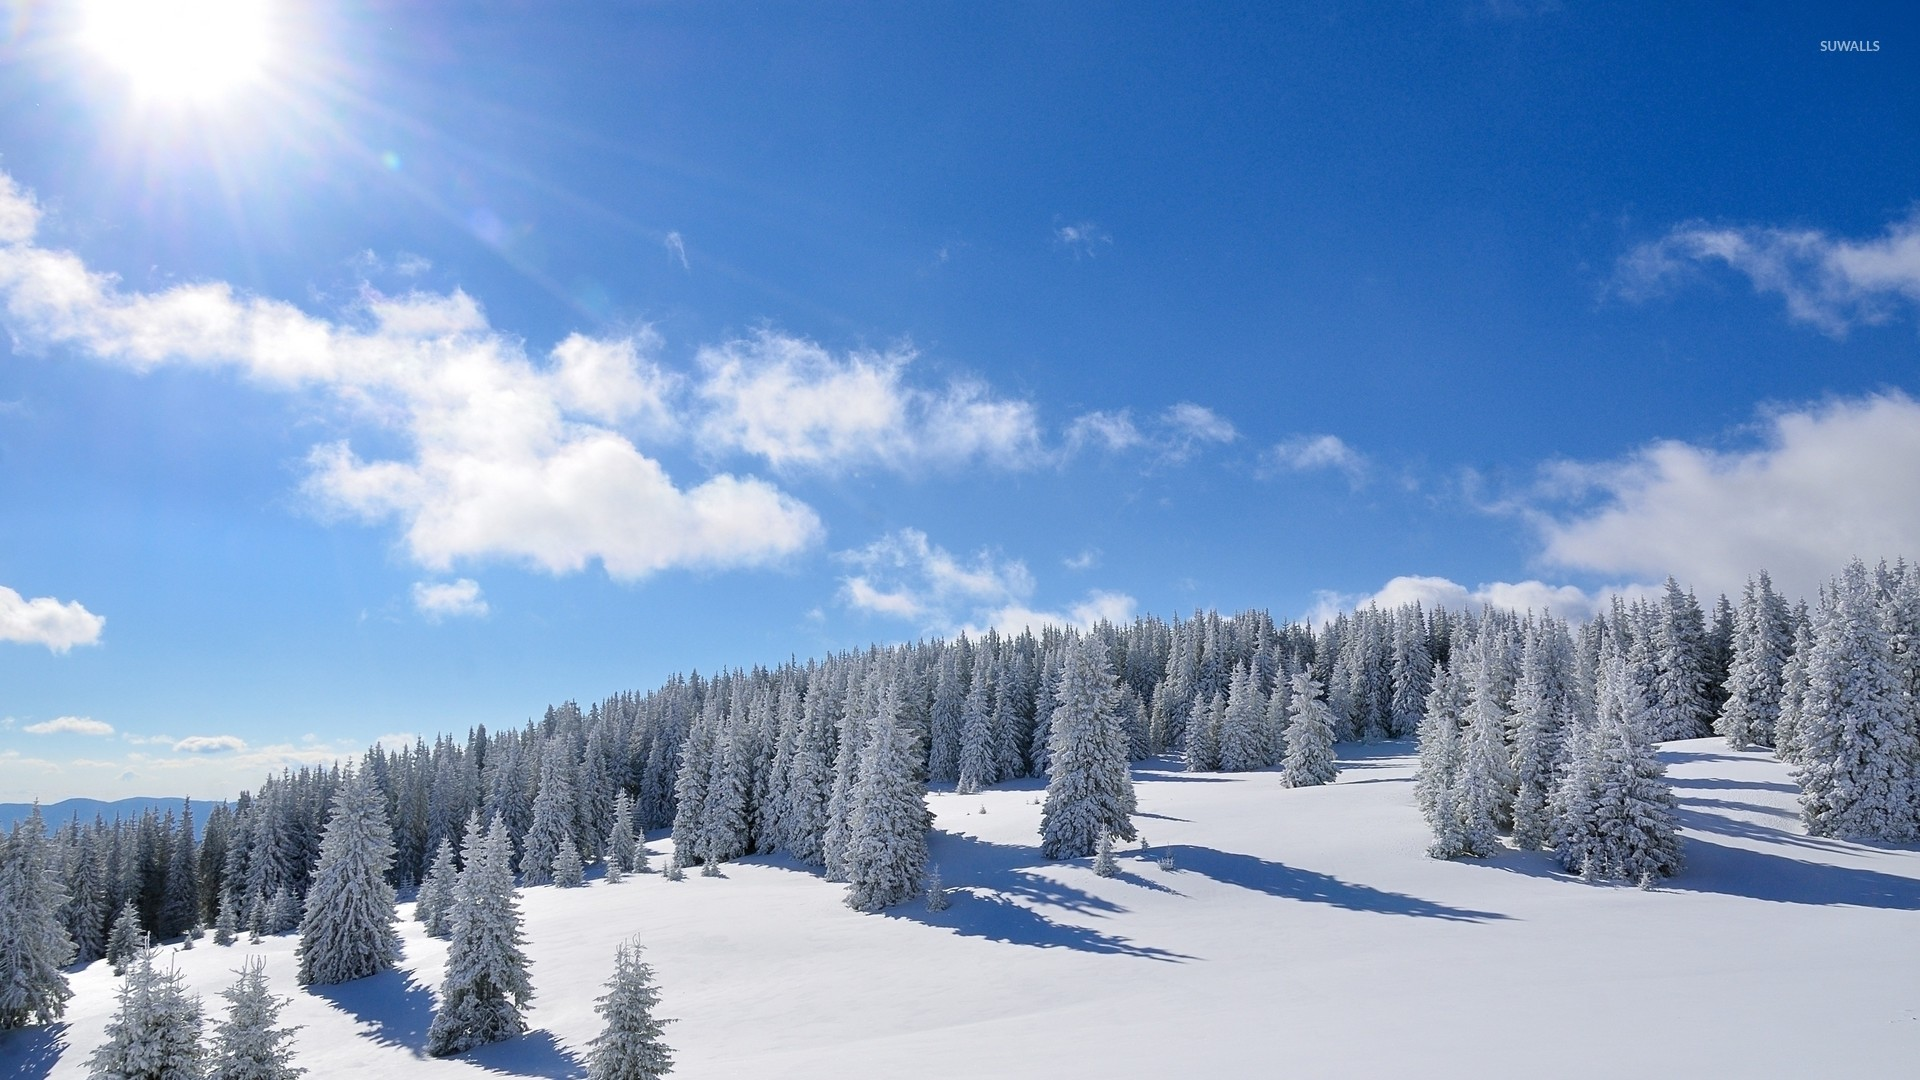 Amazing bright sun over the snowy forest wallpaper jpg